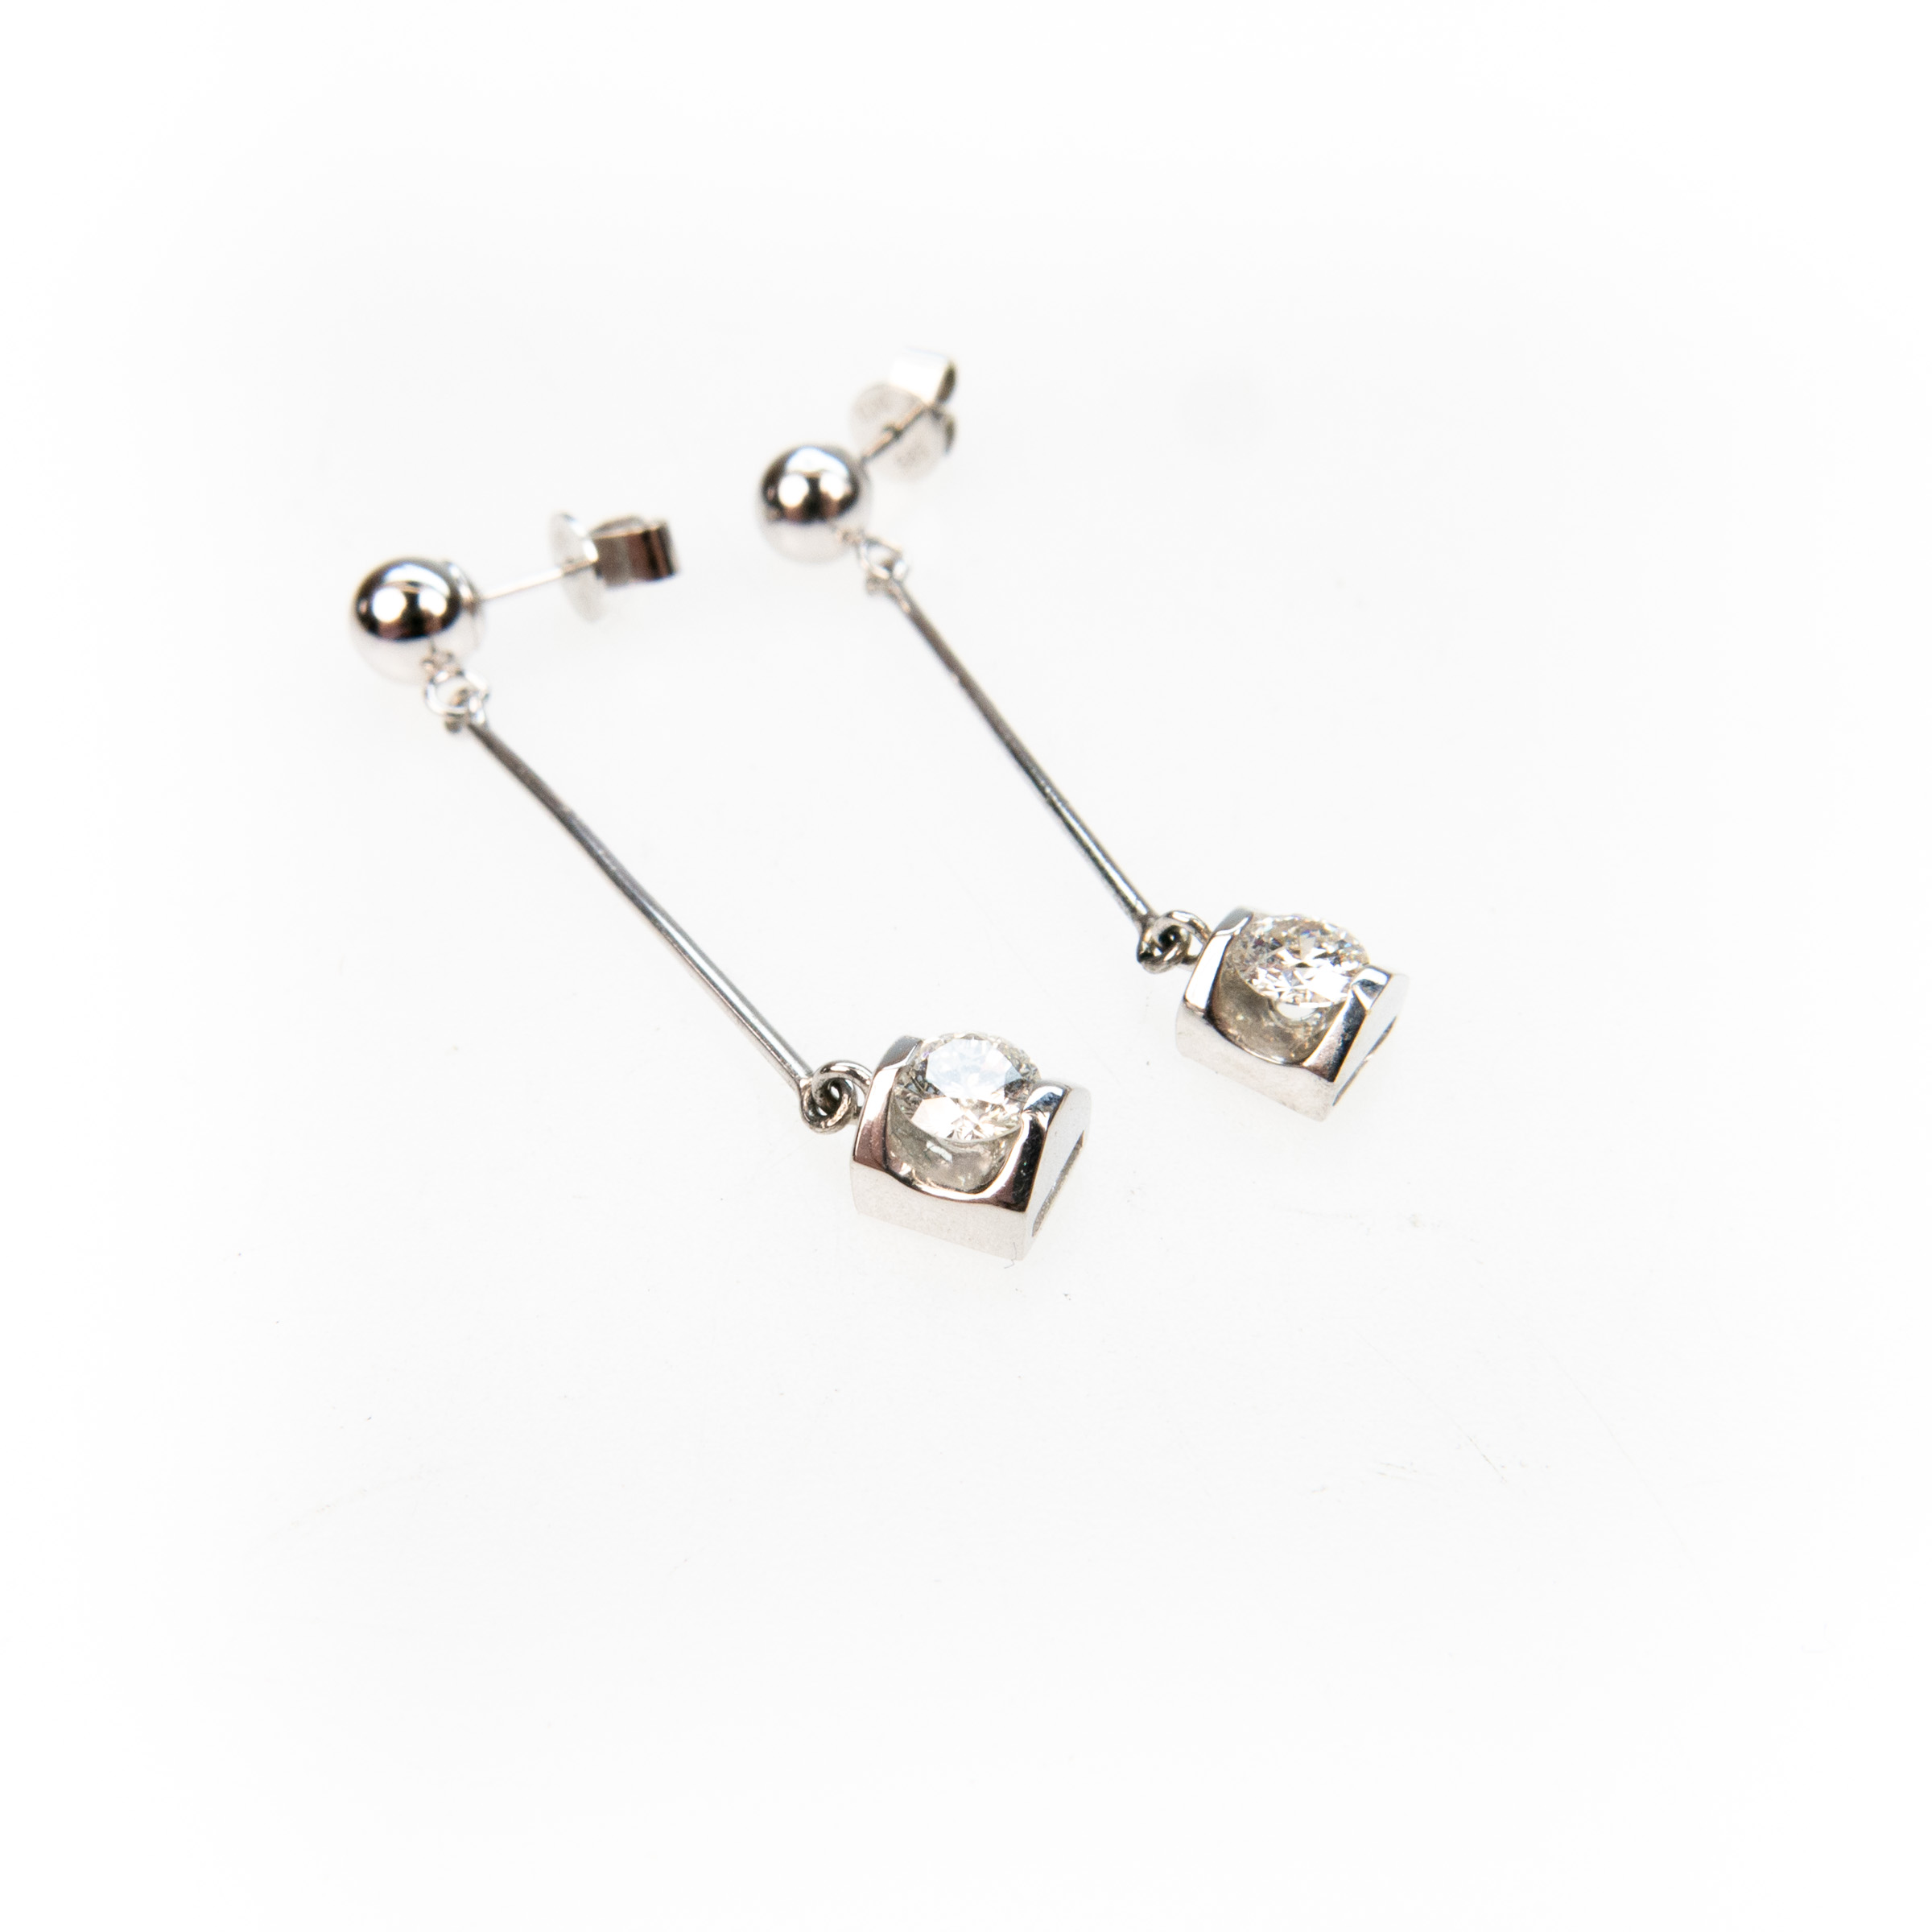 Pair Of 14K White Gold Drop Earrings